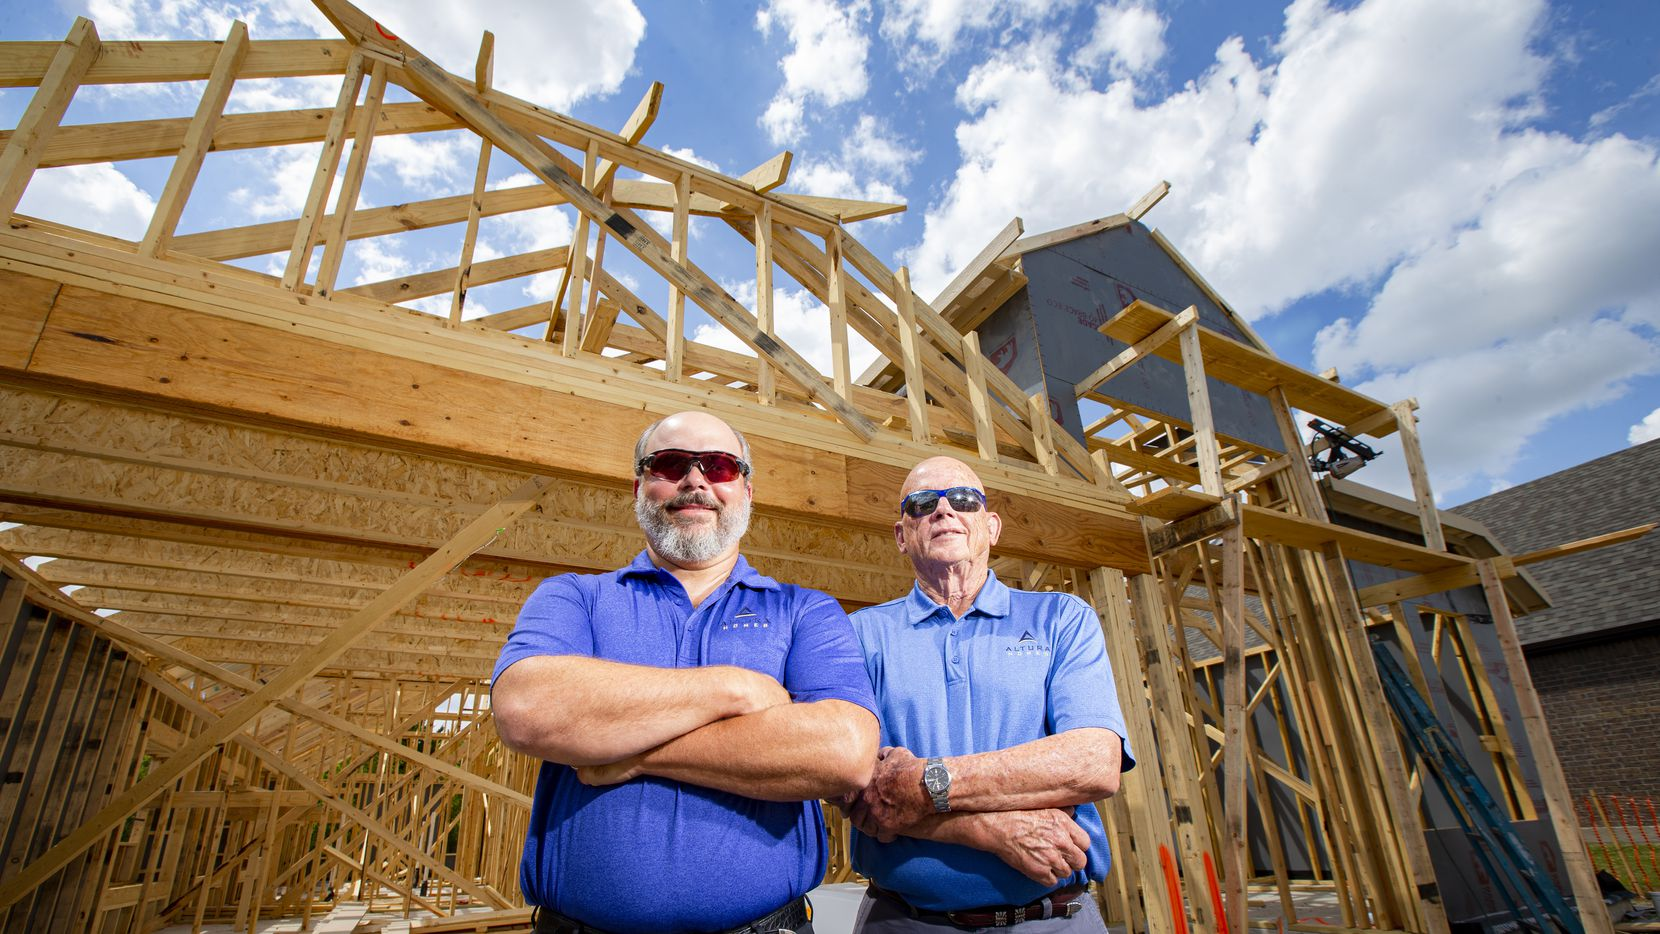 Justin Webb (left), owner of Altura Homes, and Donnie Evans, president of the company, said they haven't furloughed any workers despite the pandemic. They're shown at a home under construction in the Sonoma Verde development in Rockwall.